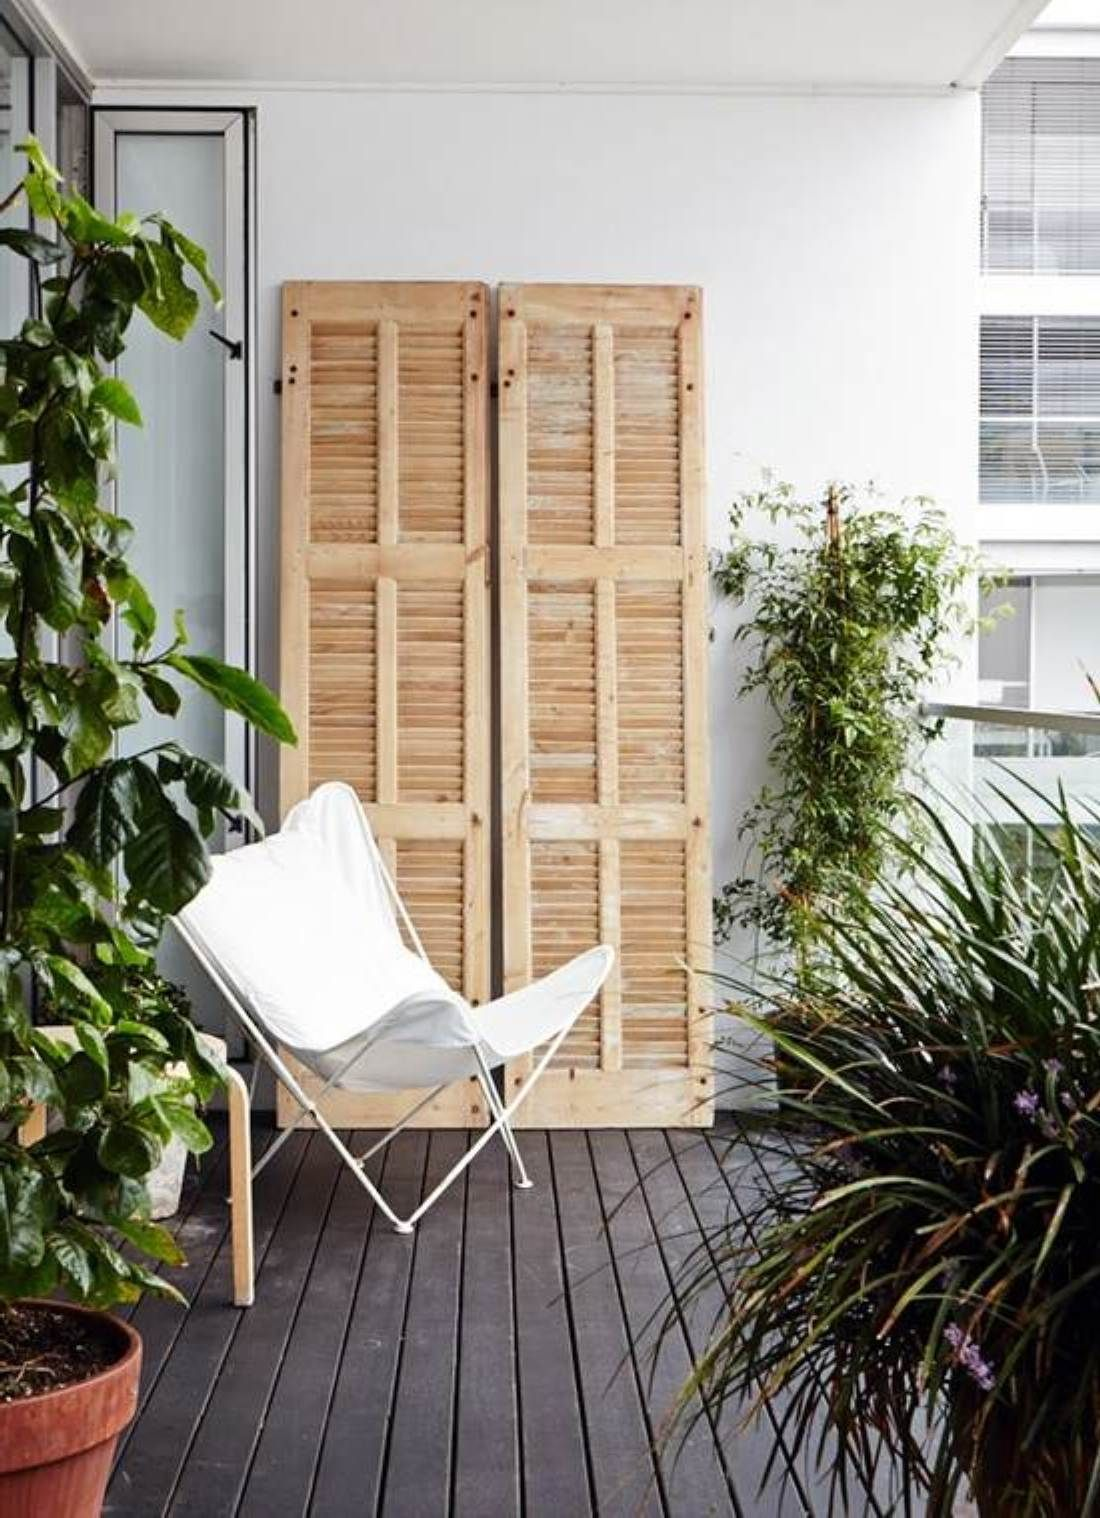 Find this pin and more on balkonien smart ideas for decorating tiny balcony apartment